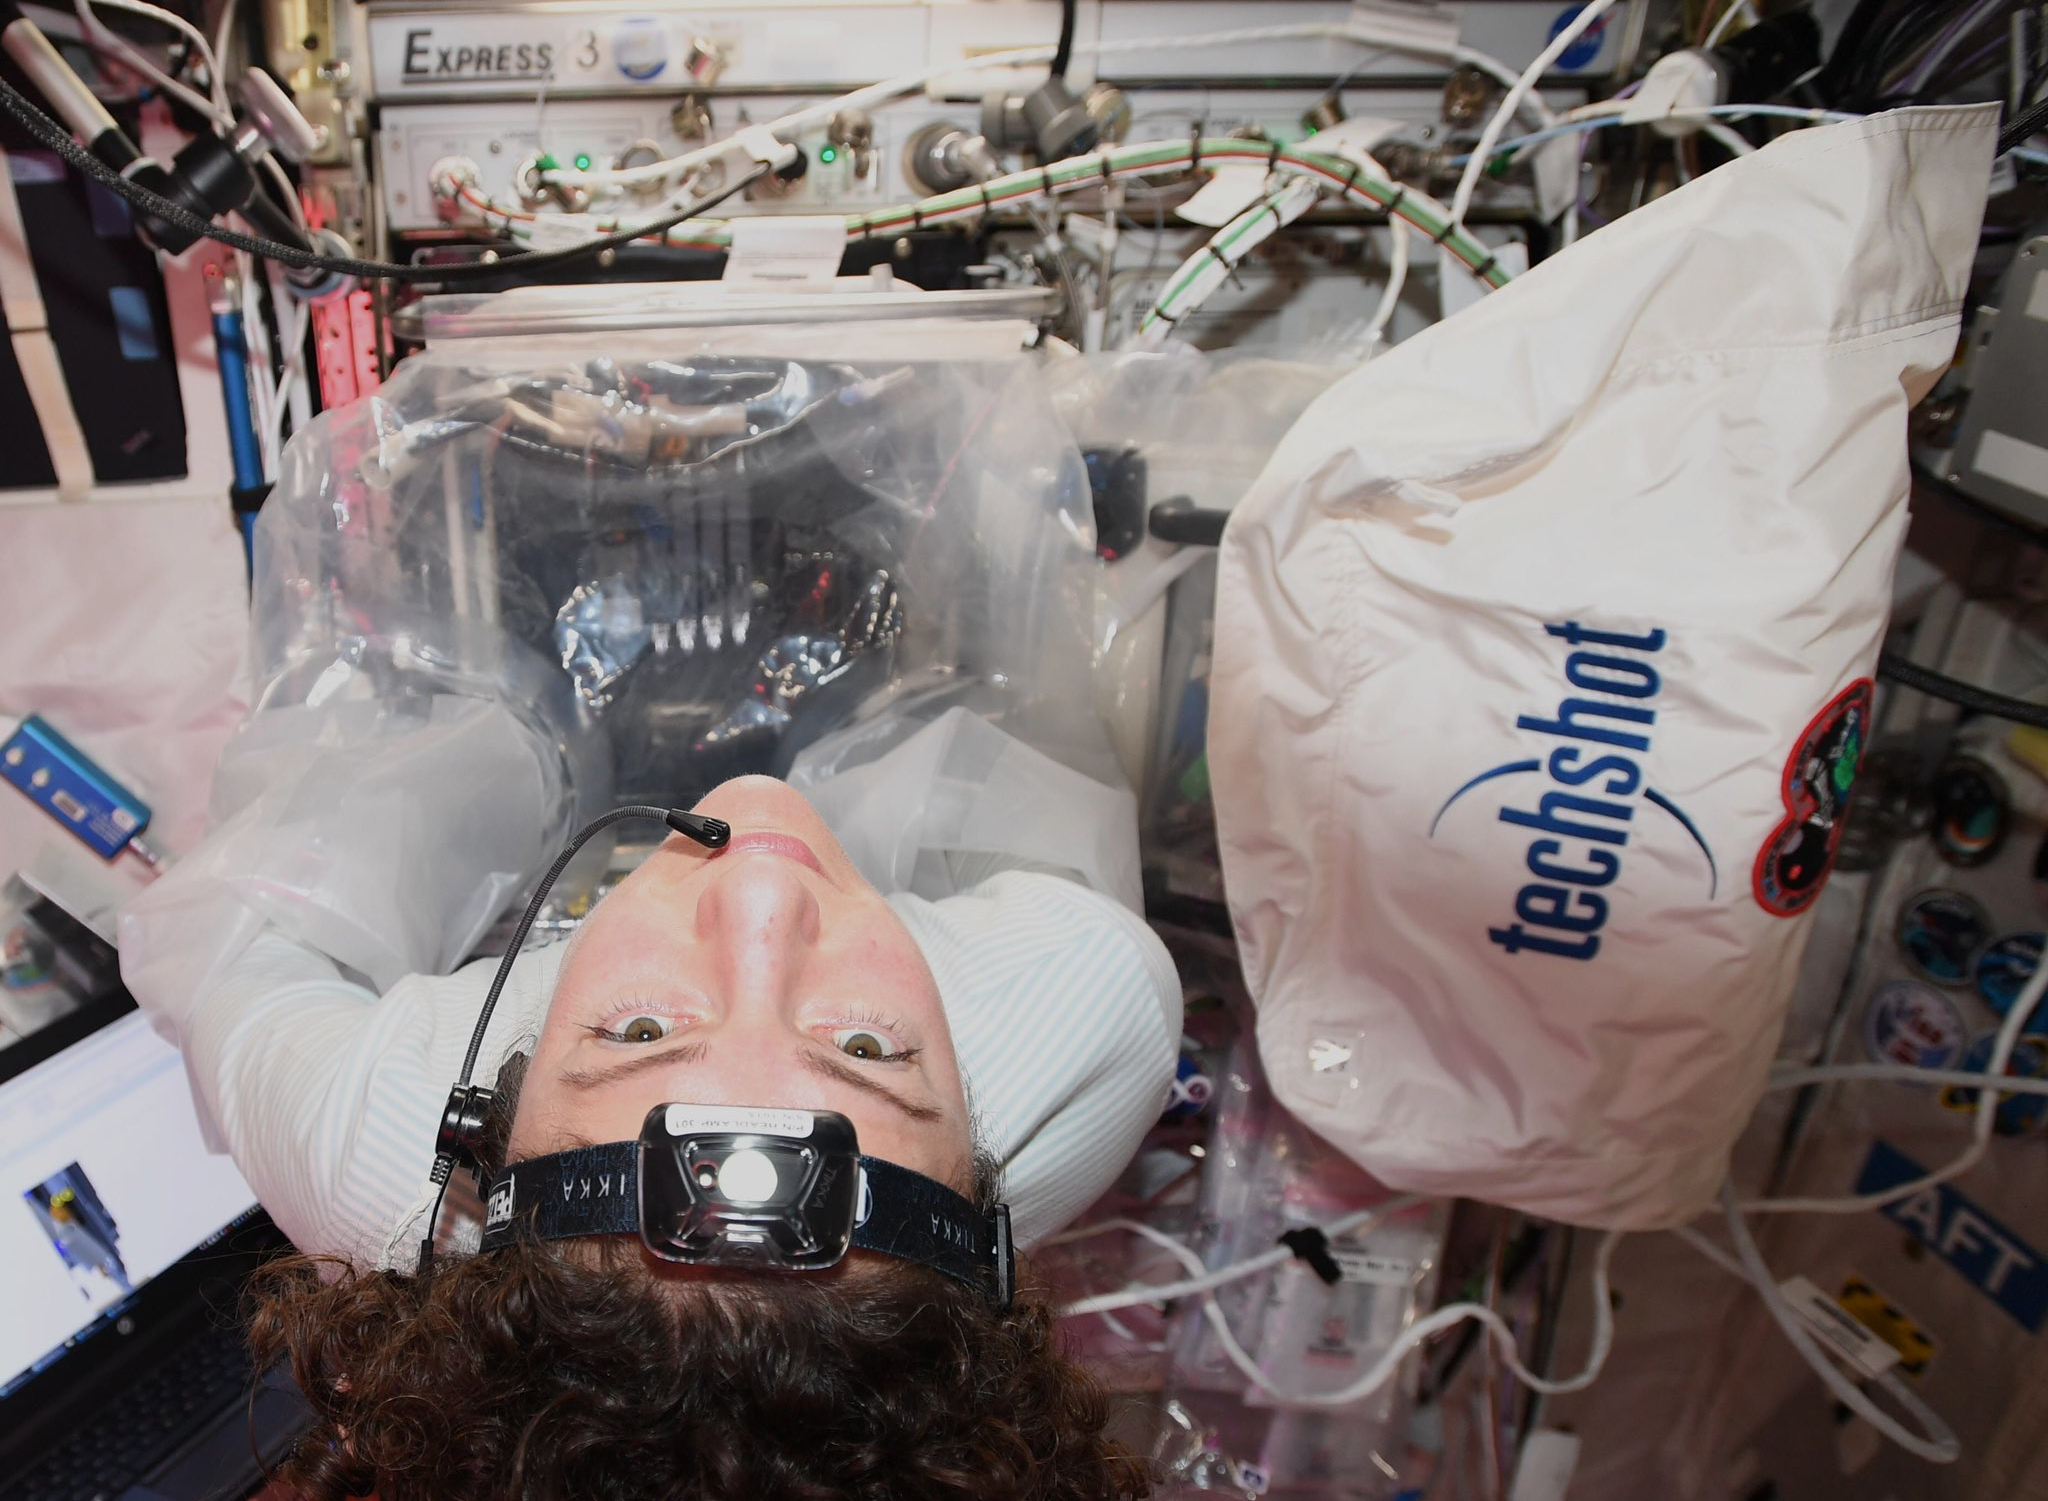 BFF in use on the ISS by Jessica Meir